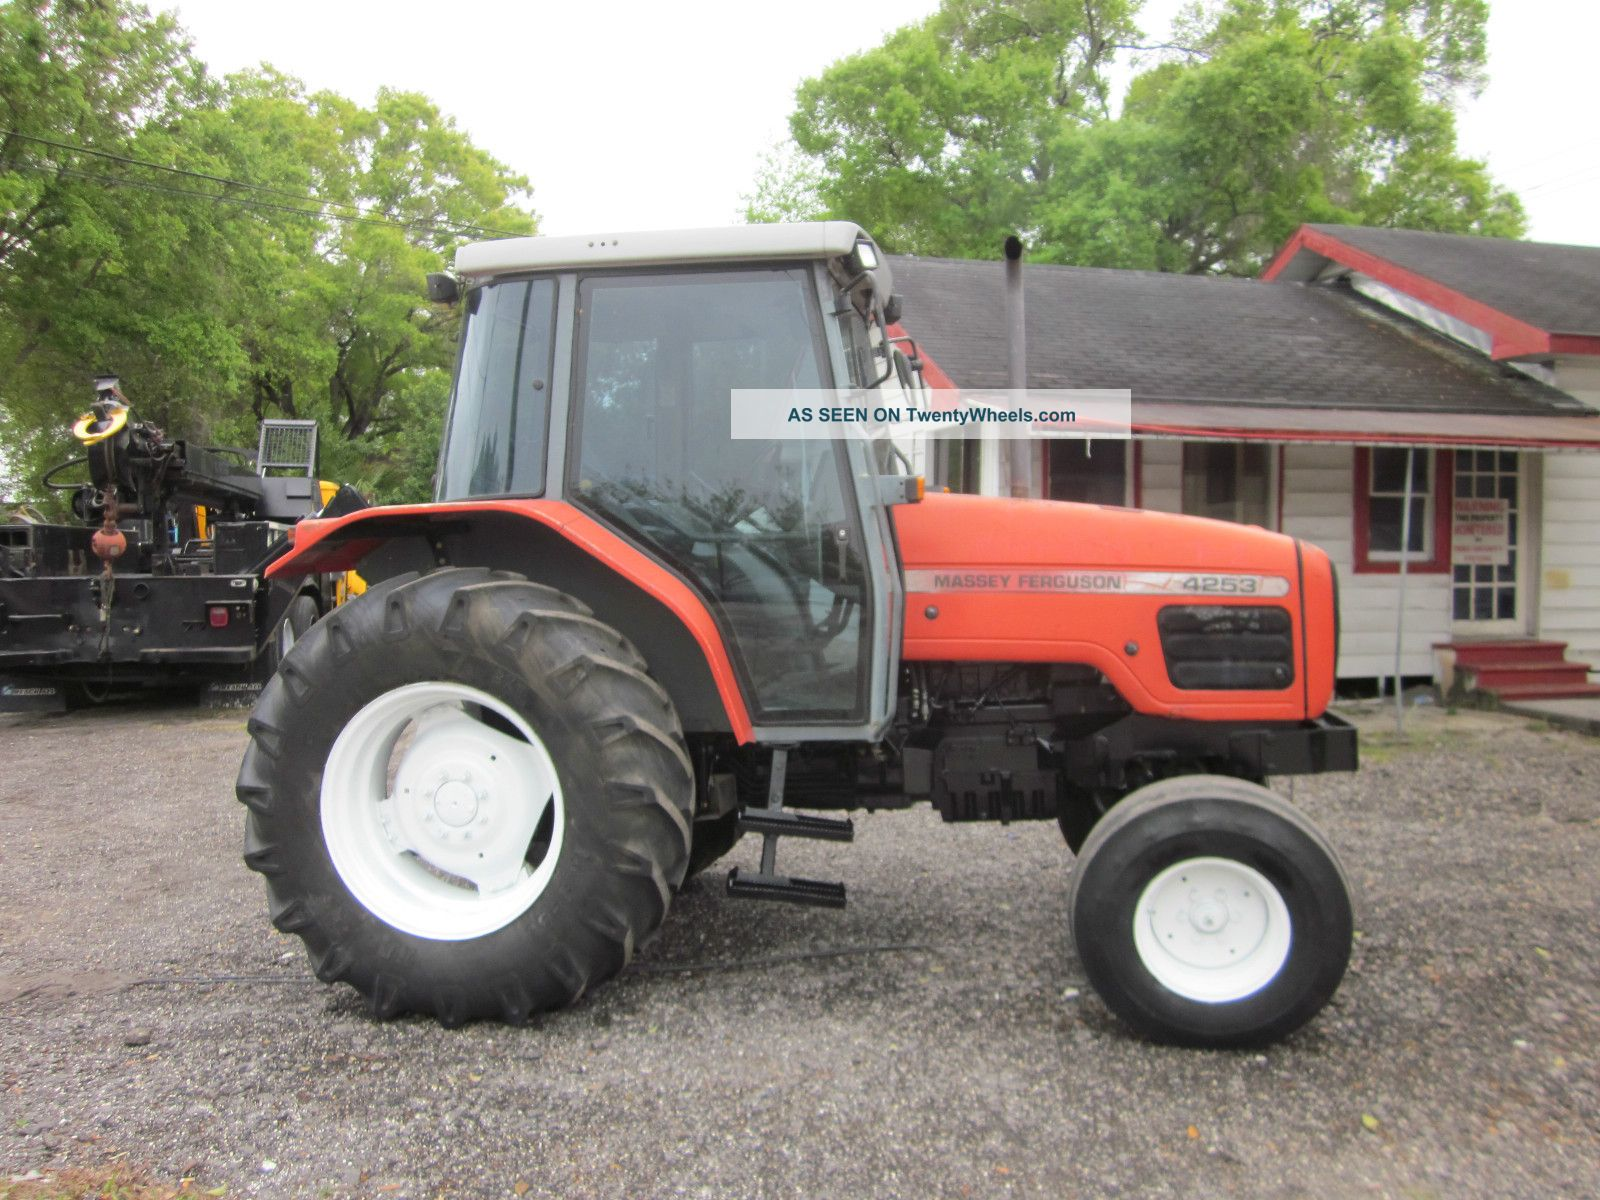 2001 Massey Ferguson 4253 Tractor Enclosed A/c Cab Tractors photo